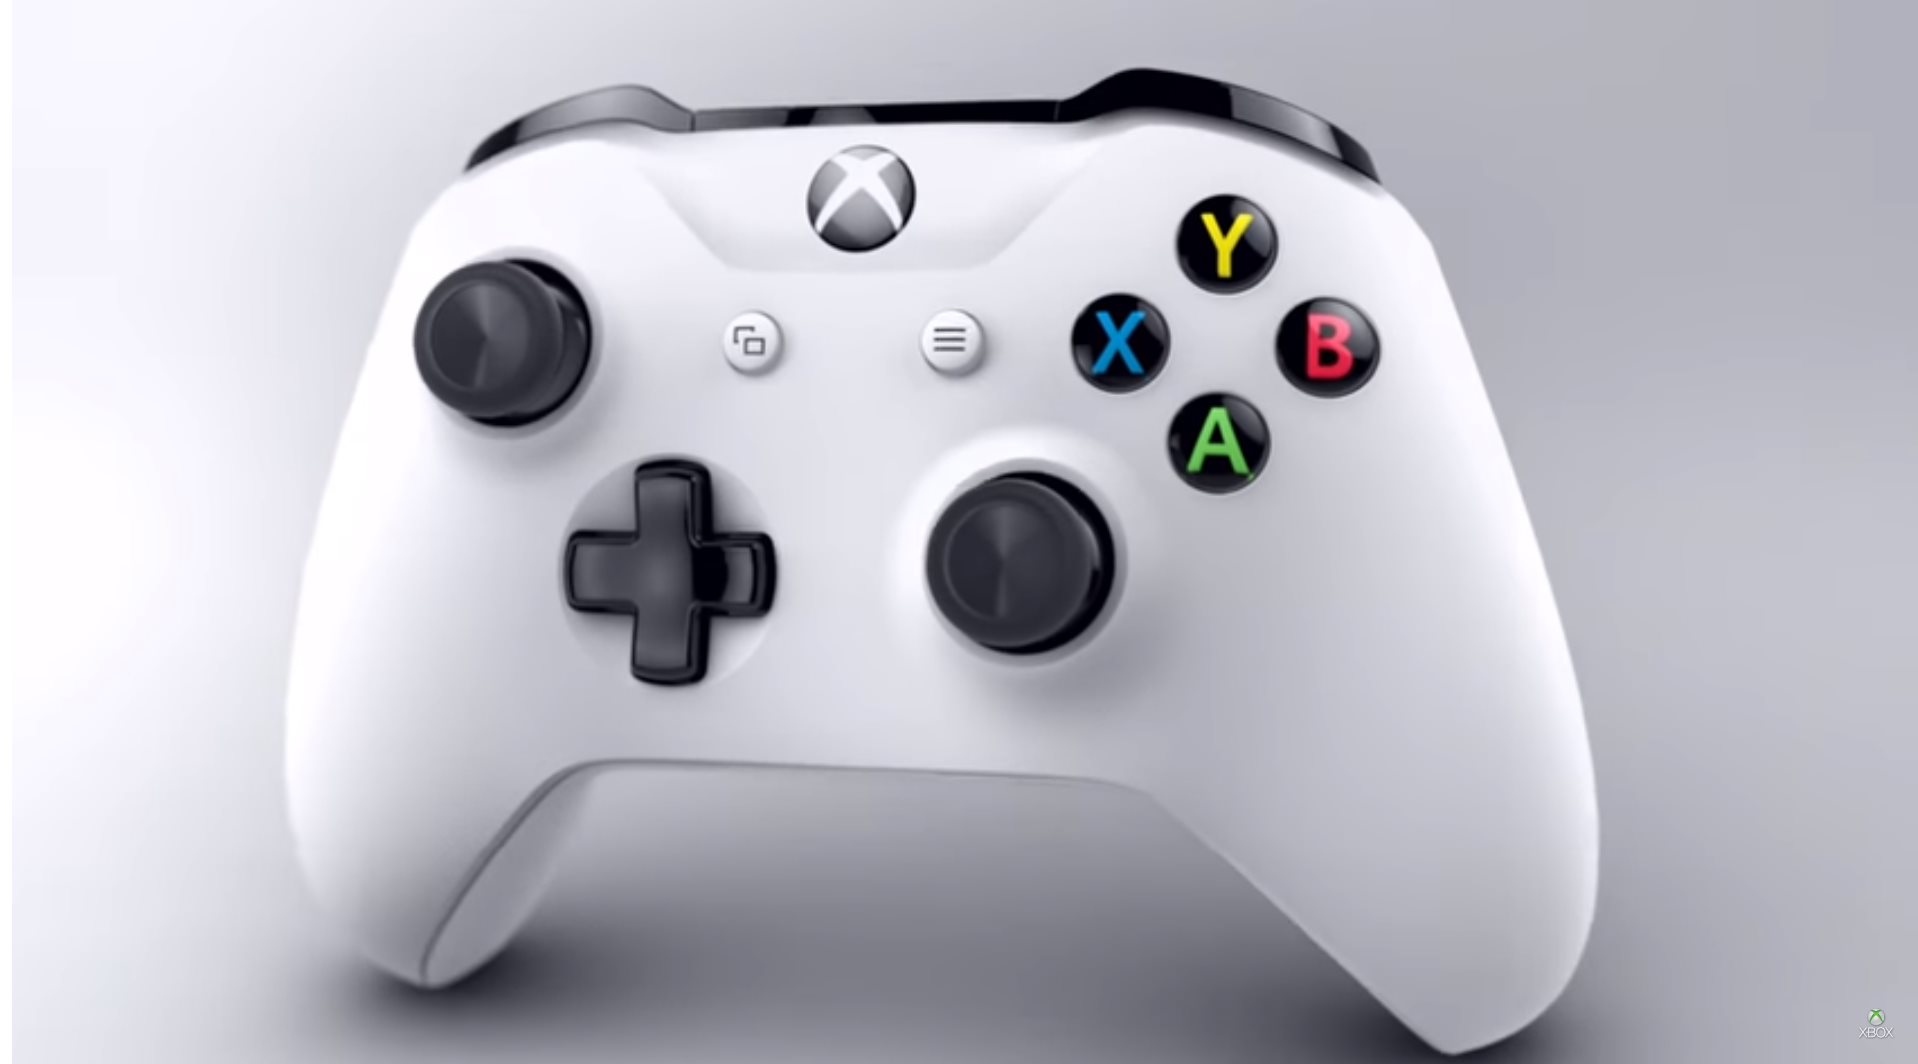 Windows 10 Mobile to Support Microsoft's New Xbox One Controller